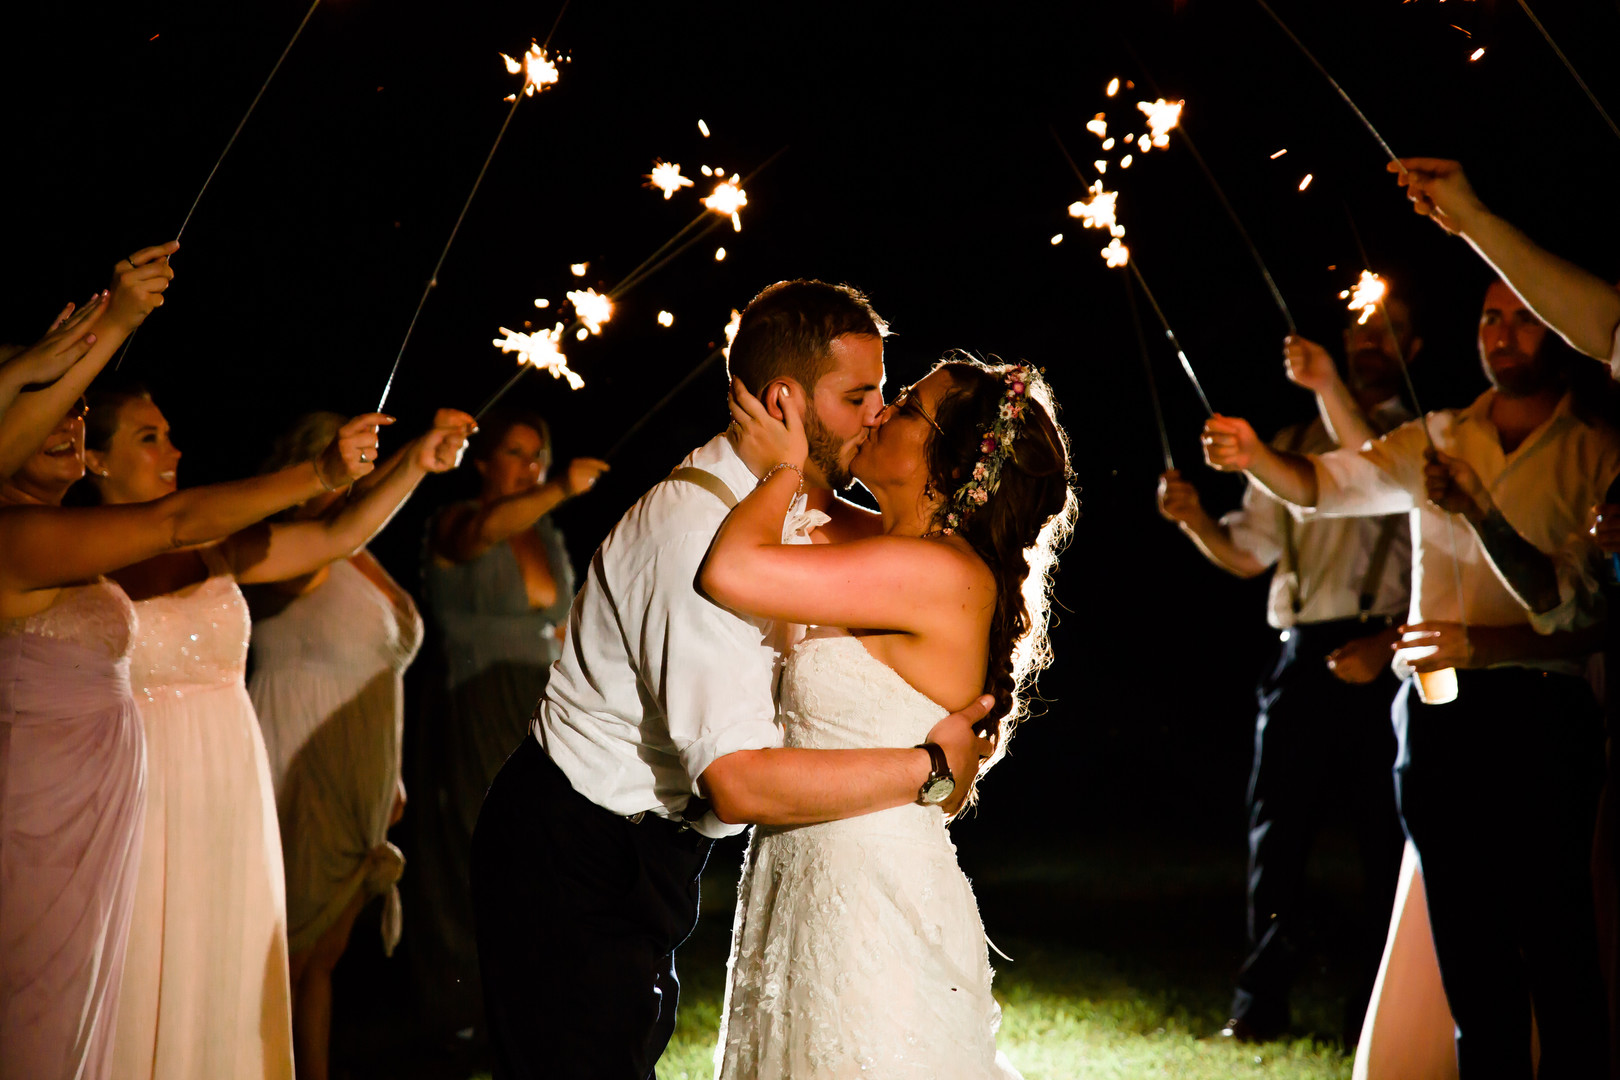 Wedding exit: Rustic country wedding in Minooka, IL captured by Katie Brsan Photography. Visit CHItheeWED.com for more wedding inspiration!